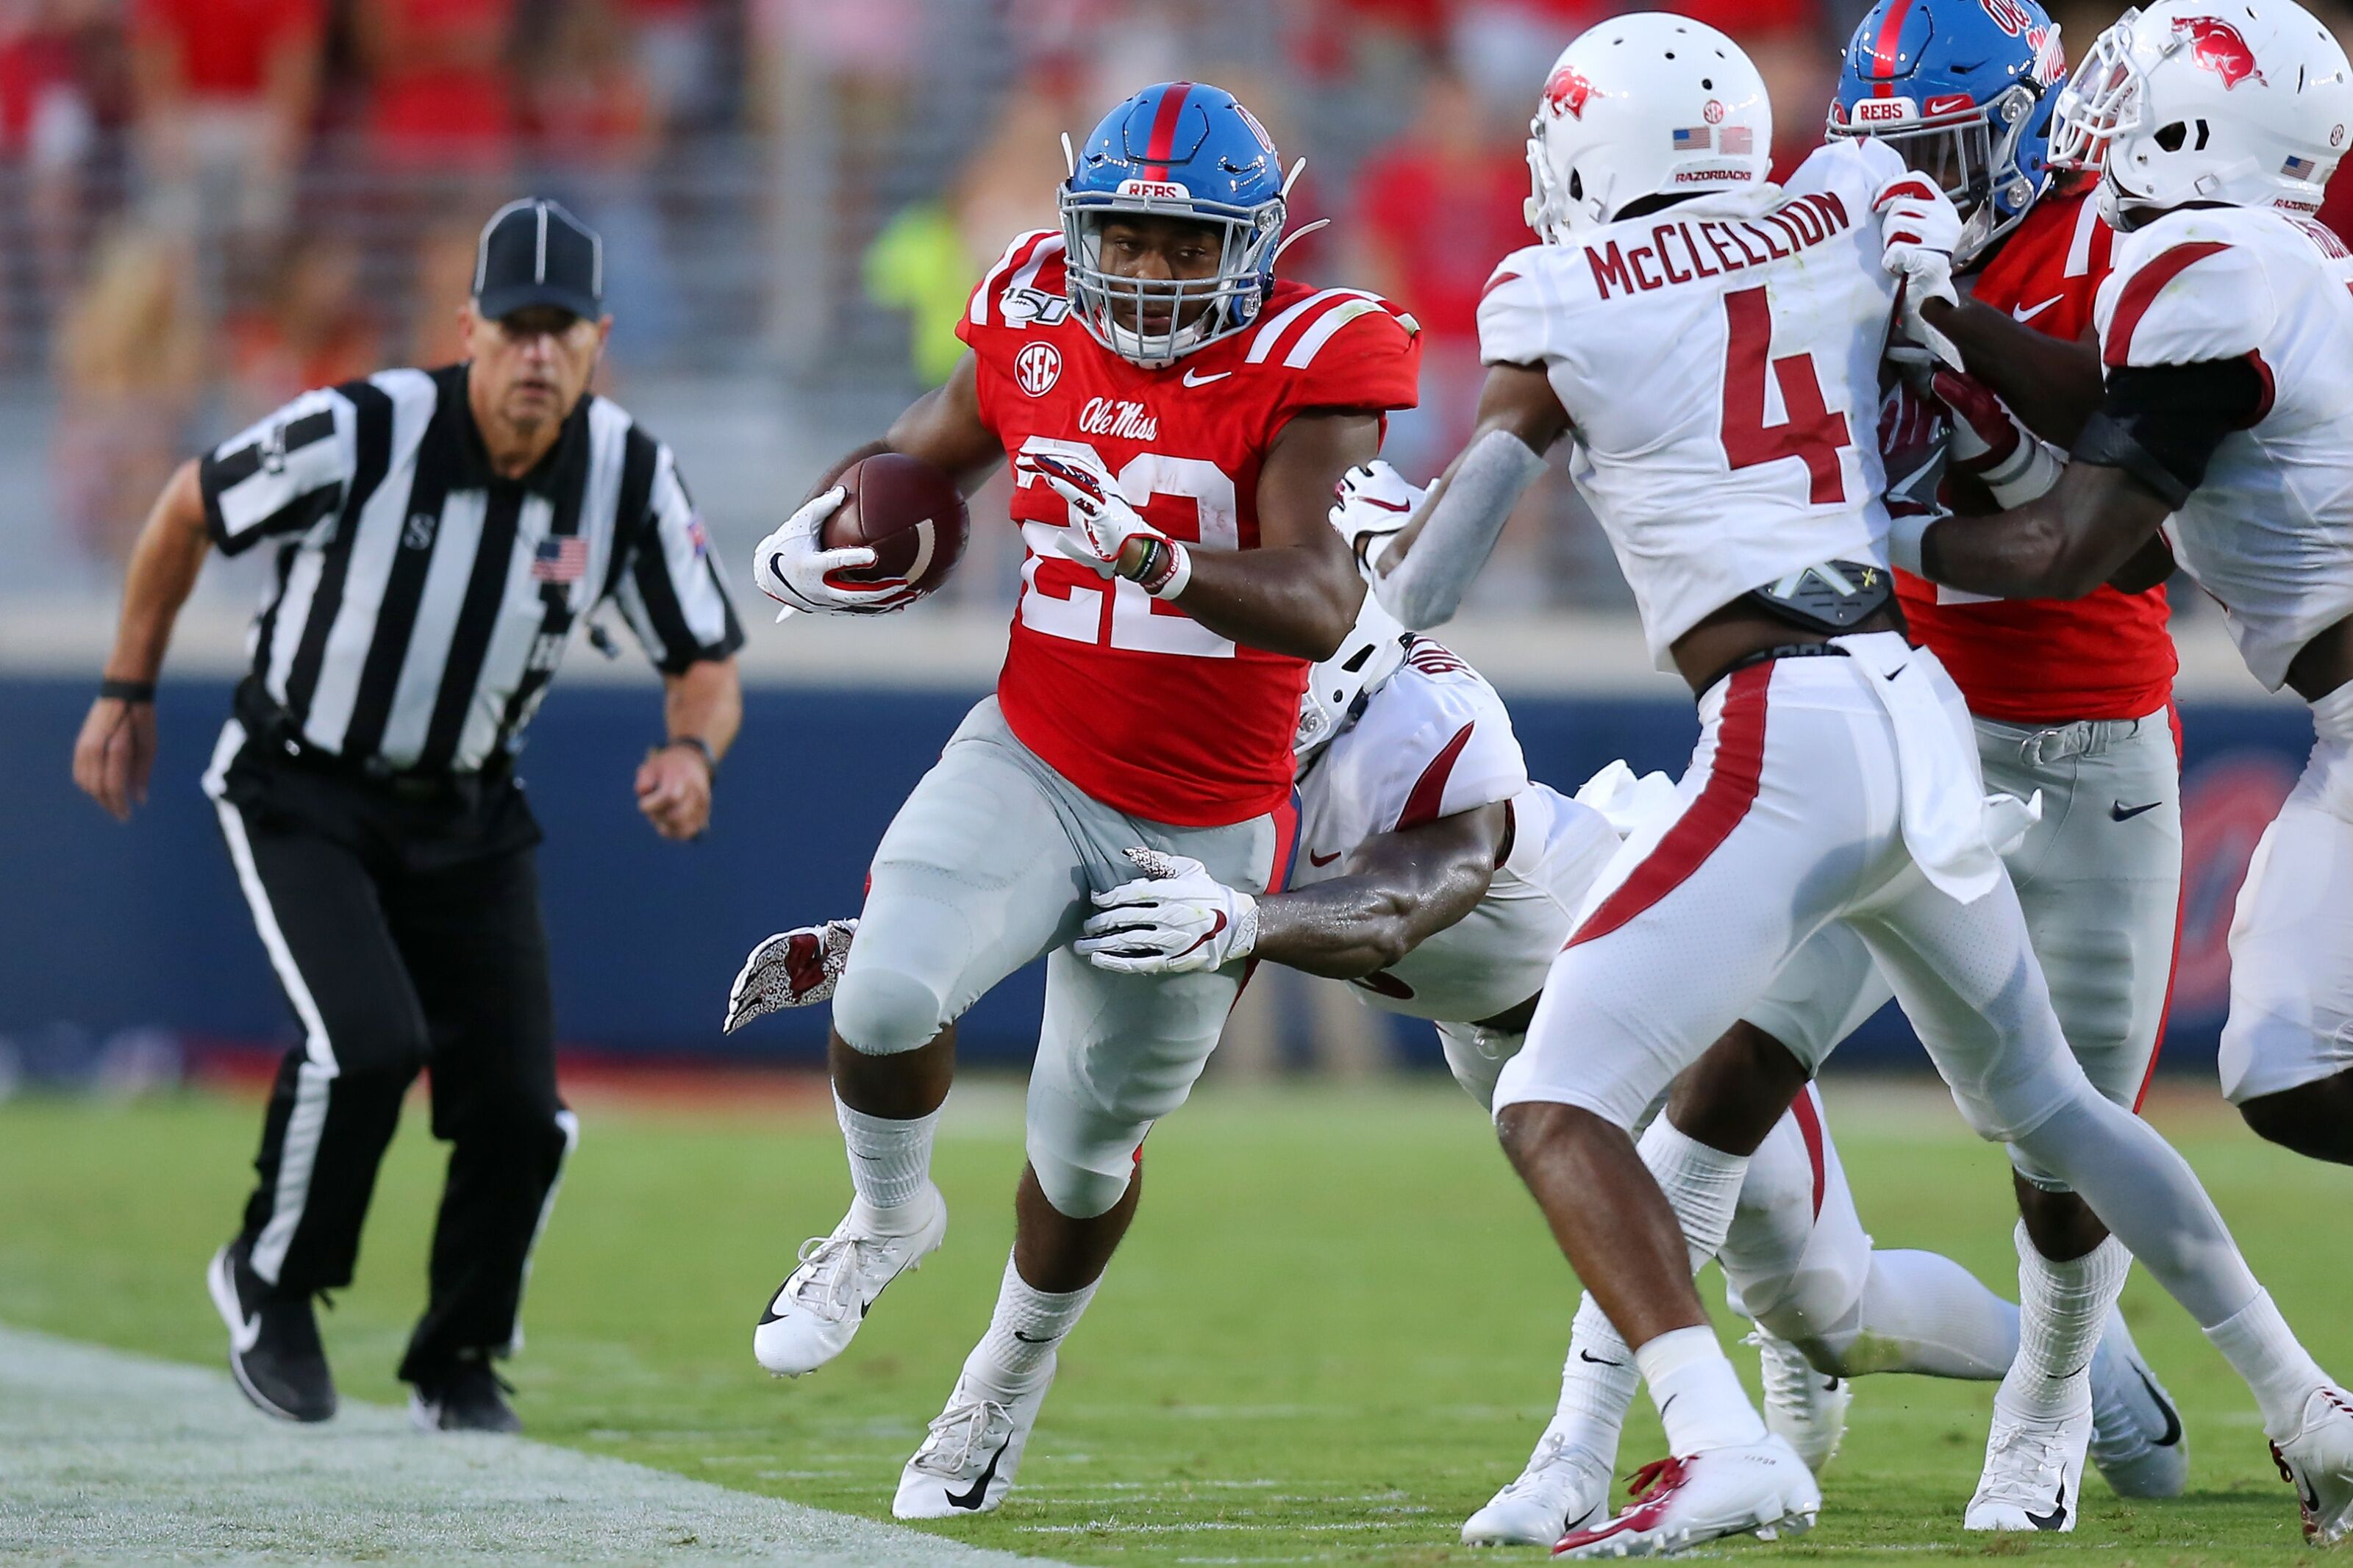 Alabama Football: Ole Miss might be content playing on the road